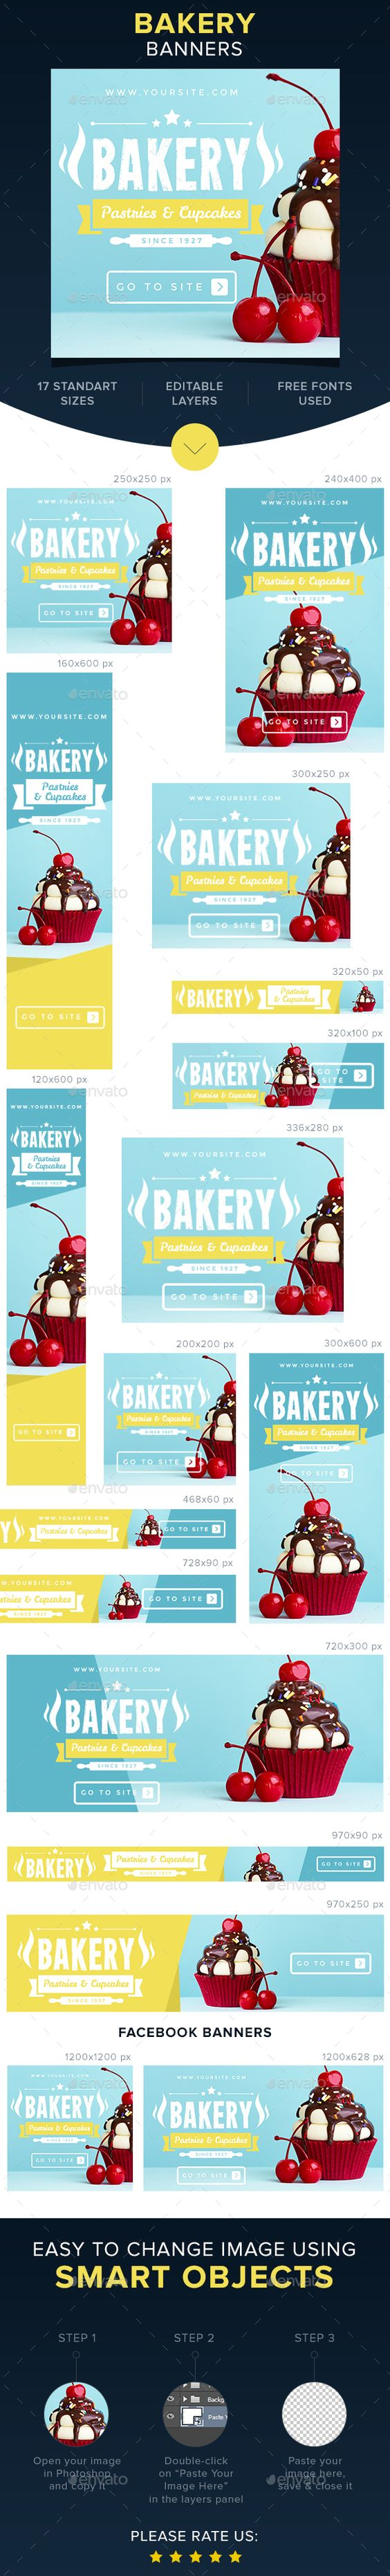 Roti clipart bakery Template Roti Download Web here: